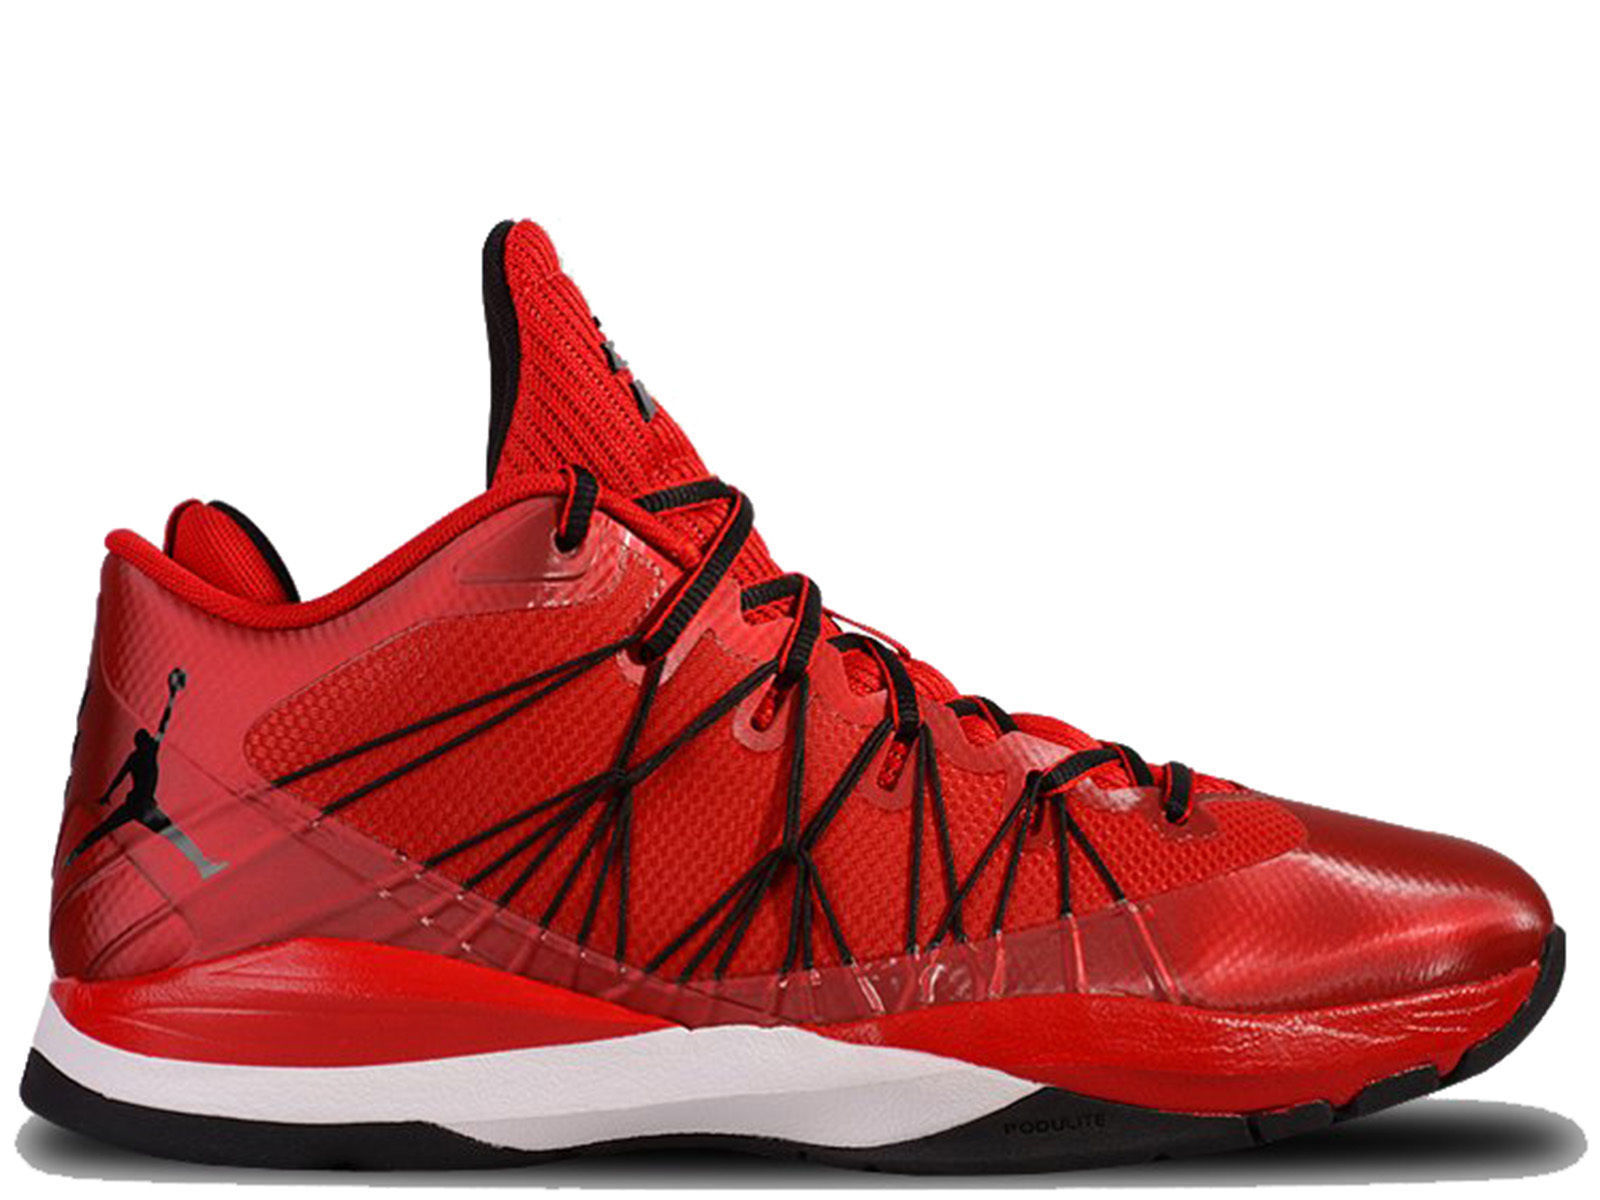 buy online 57cf5 36f44 NEW Nike AIR JORDAN CP3 VII AE MEN S BASKETBALL SHOES SHOES SHOES GYM RED  644805 601